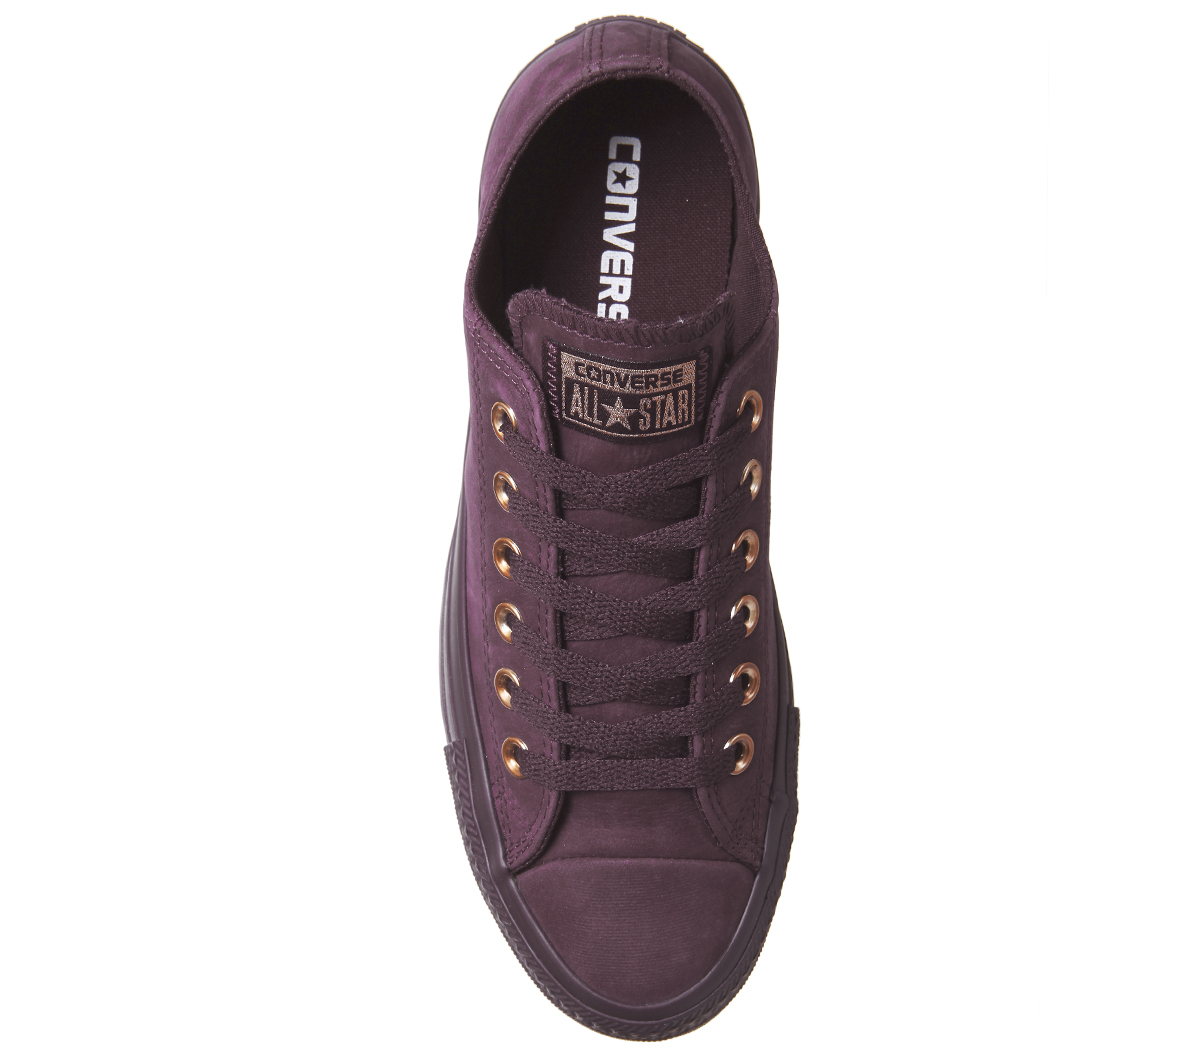 fe4bae45f779c5 Womens Converse All Star Low Leather DARK SANGRIA ROSE GOLD EXCLUSIVE  Trainers S